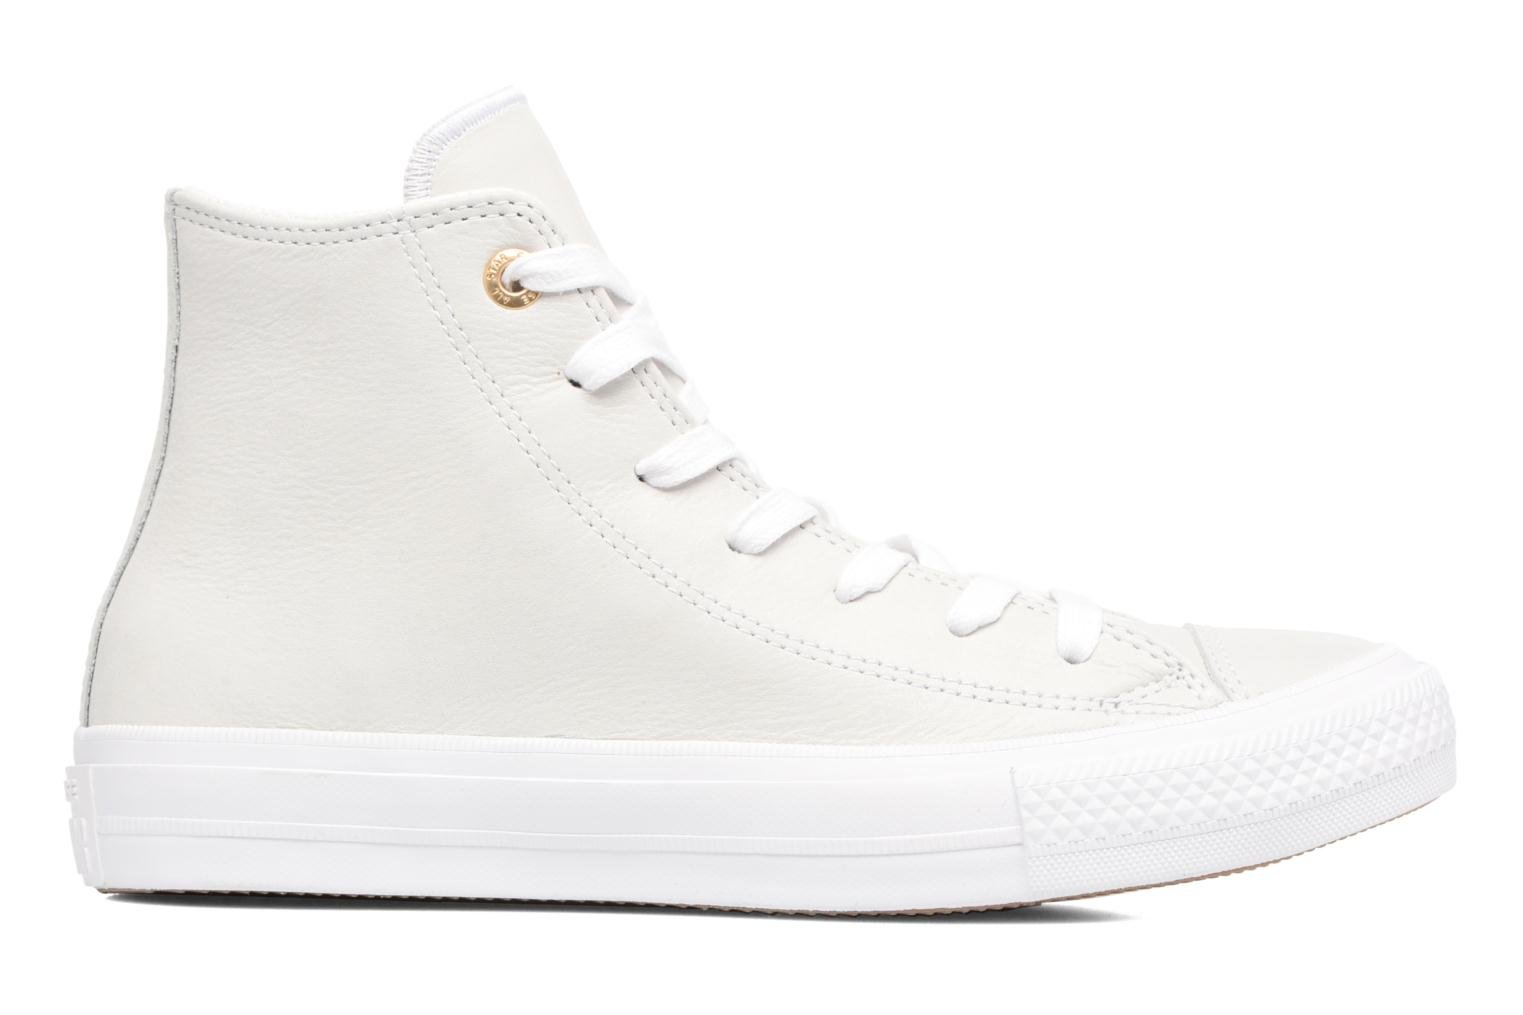 White White Leather All Flower Chuck Craft II Hi Taylor Star Converse Blue qBPavA